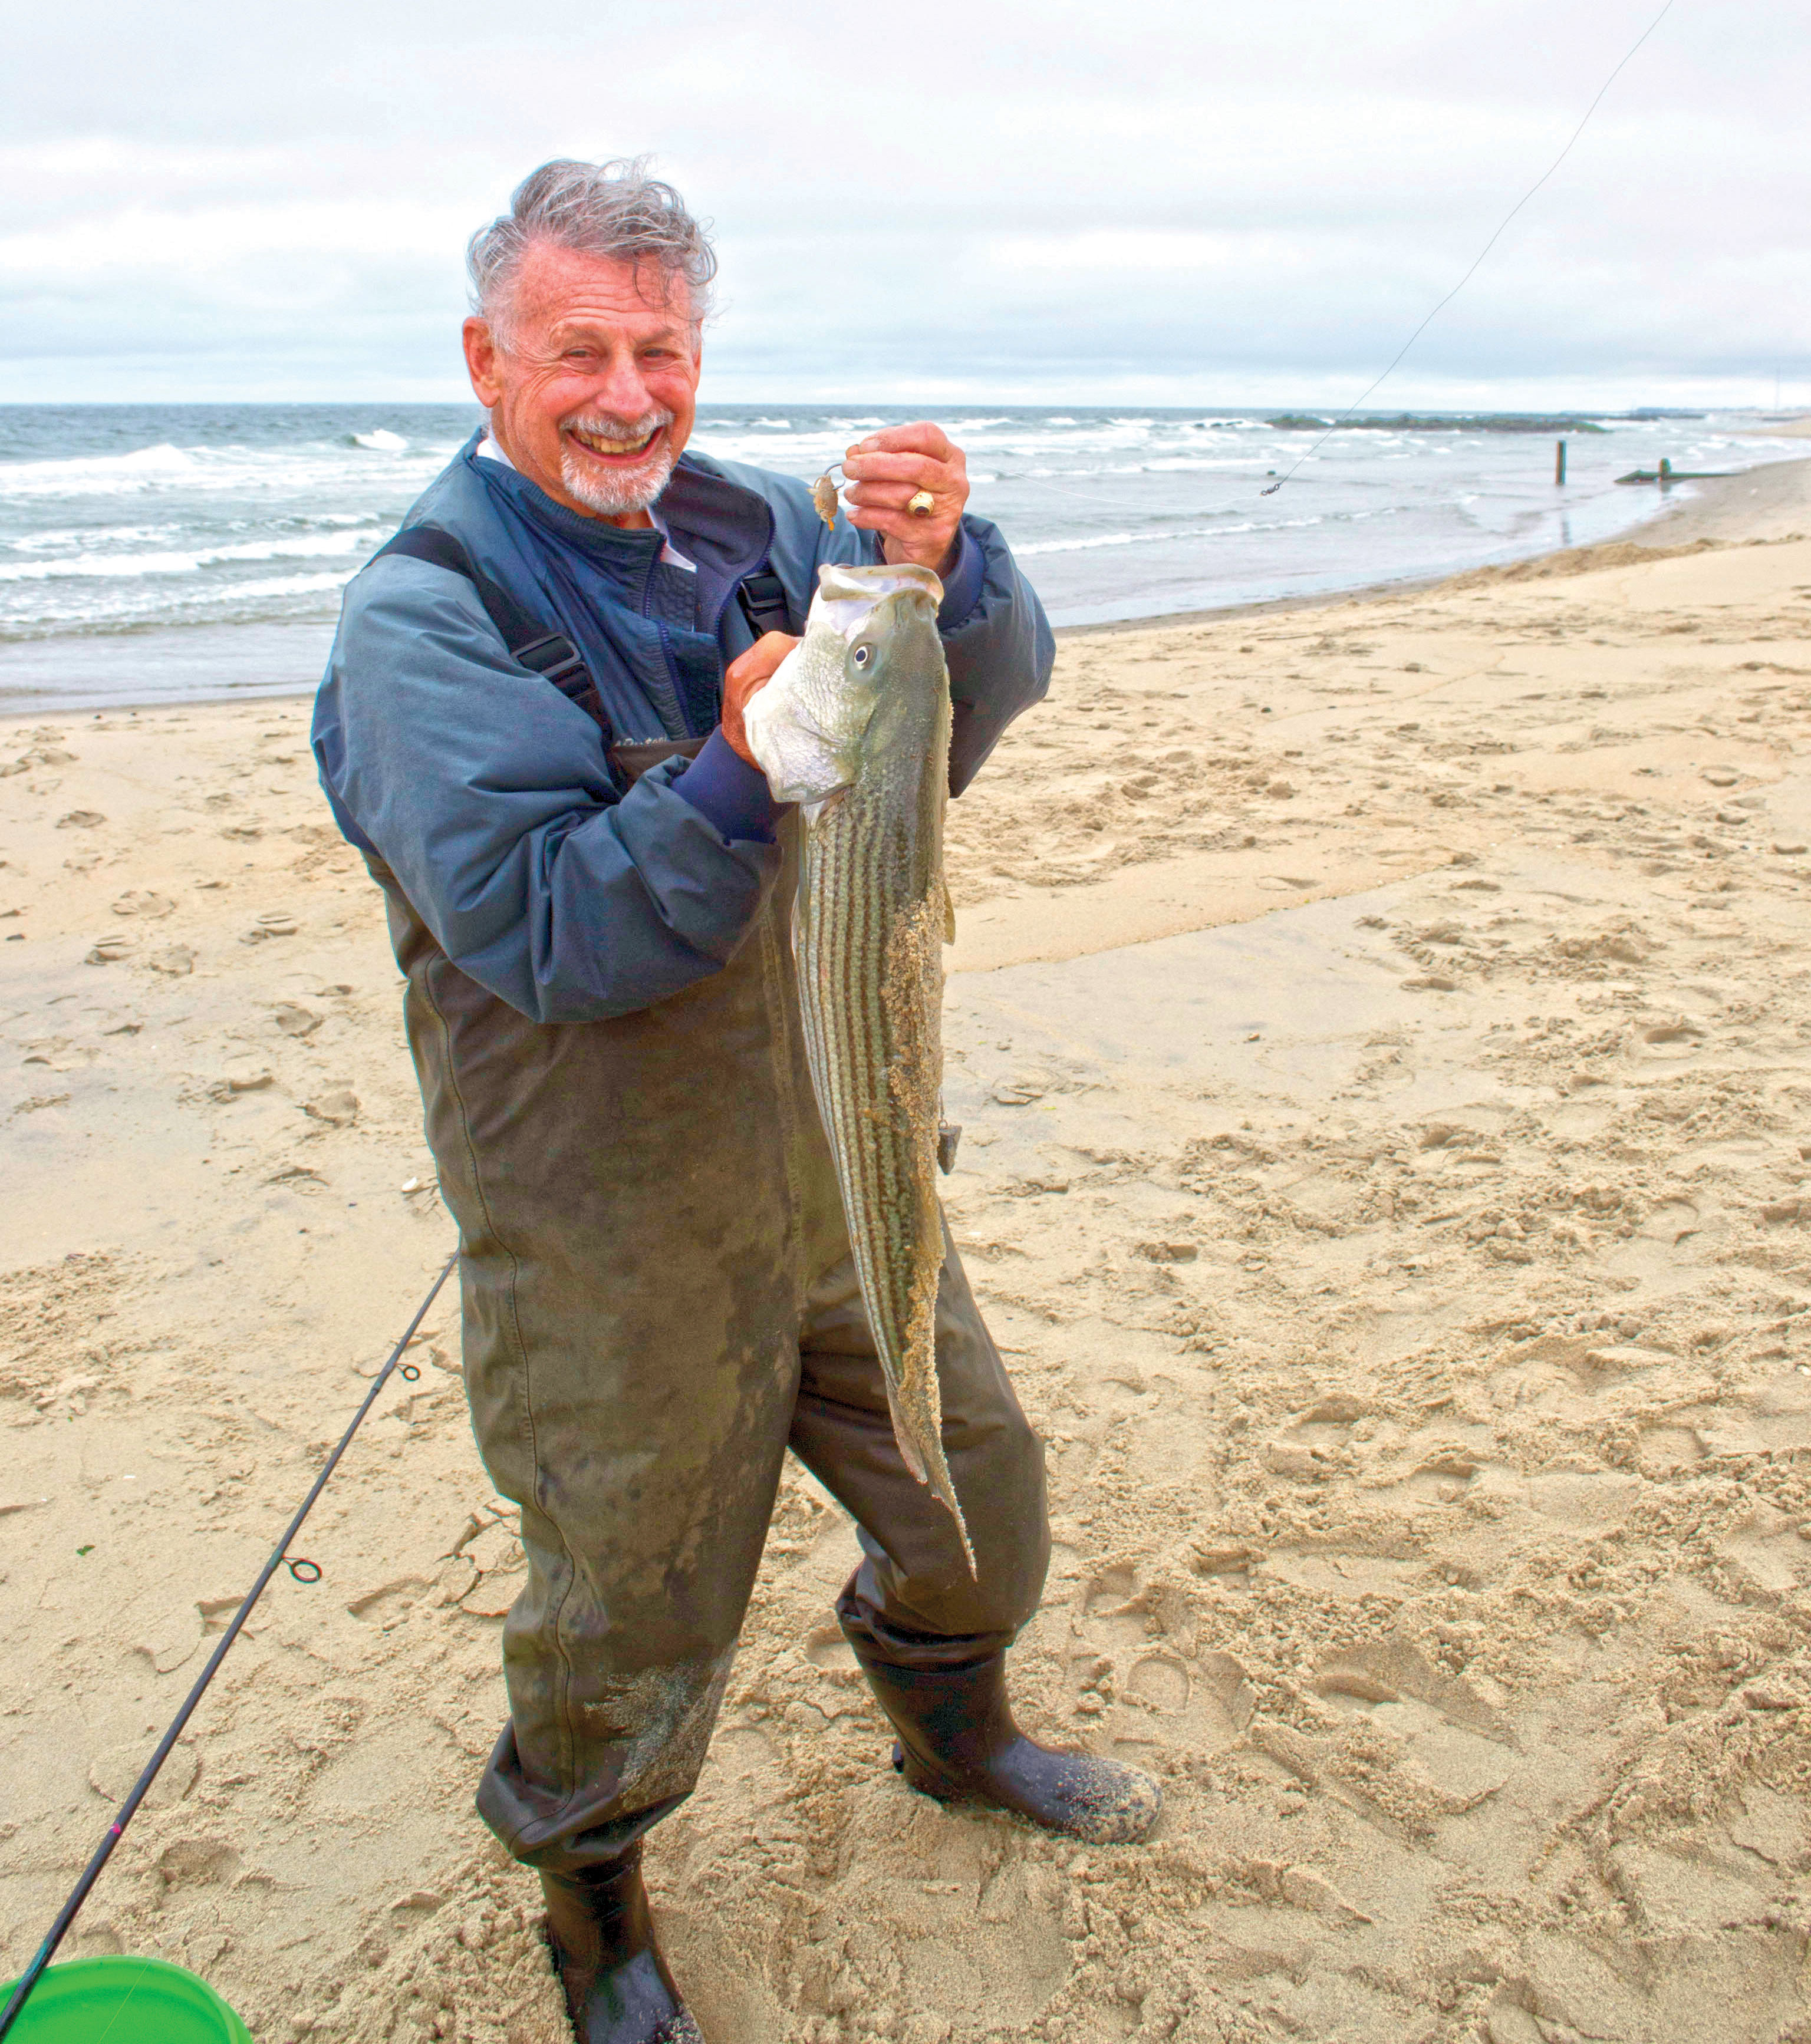 Man in jumpsuit in the sand holding the fish he caught